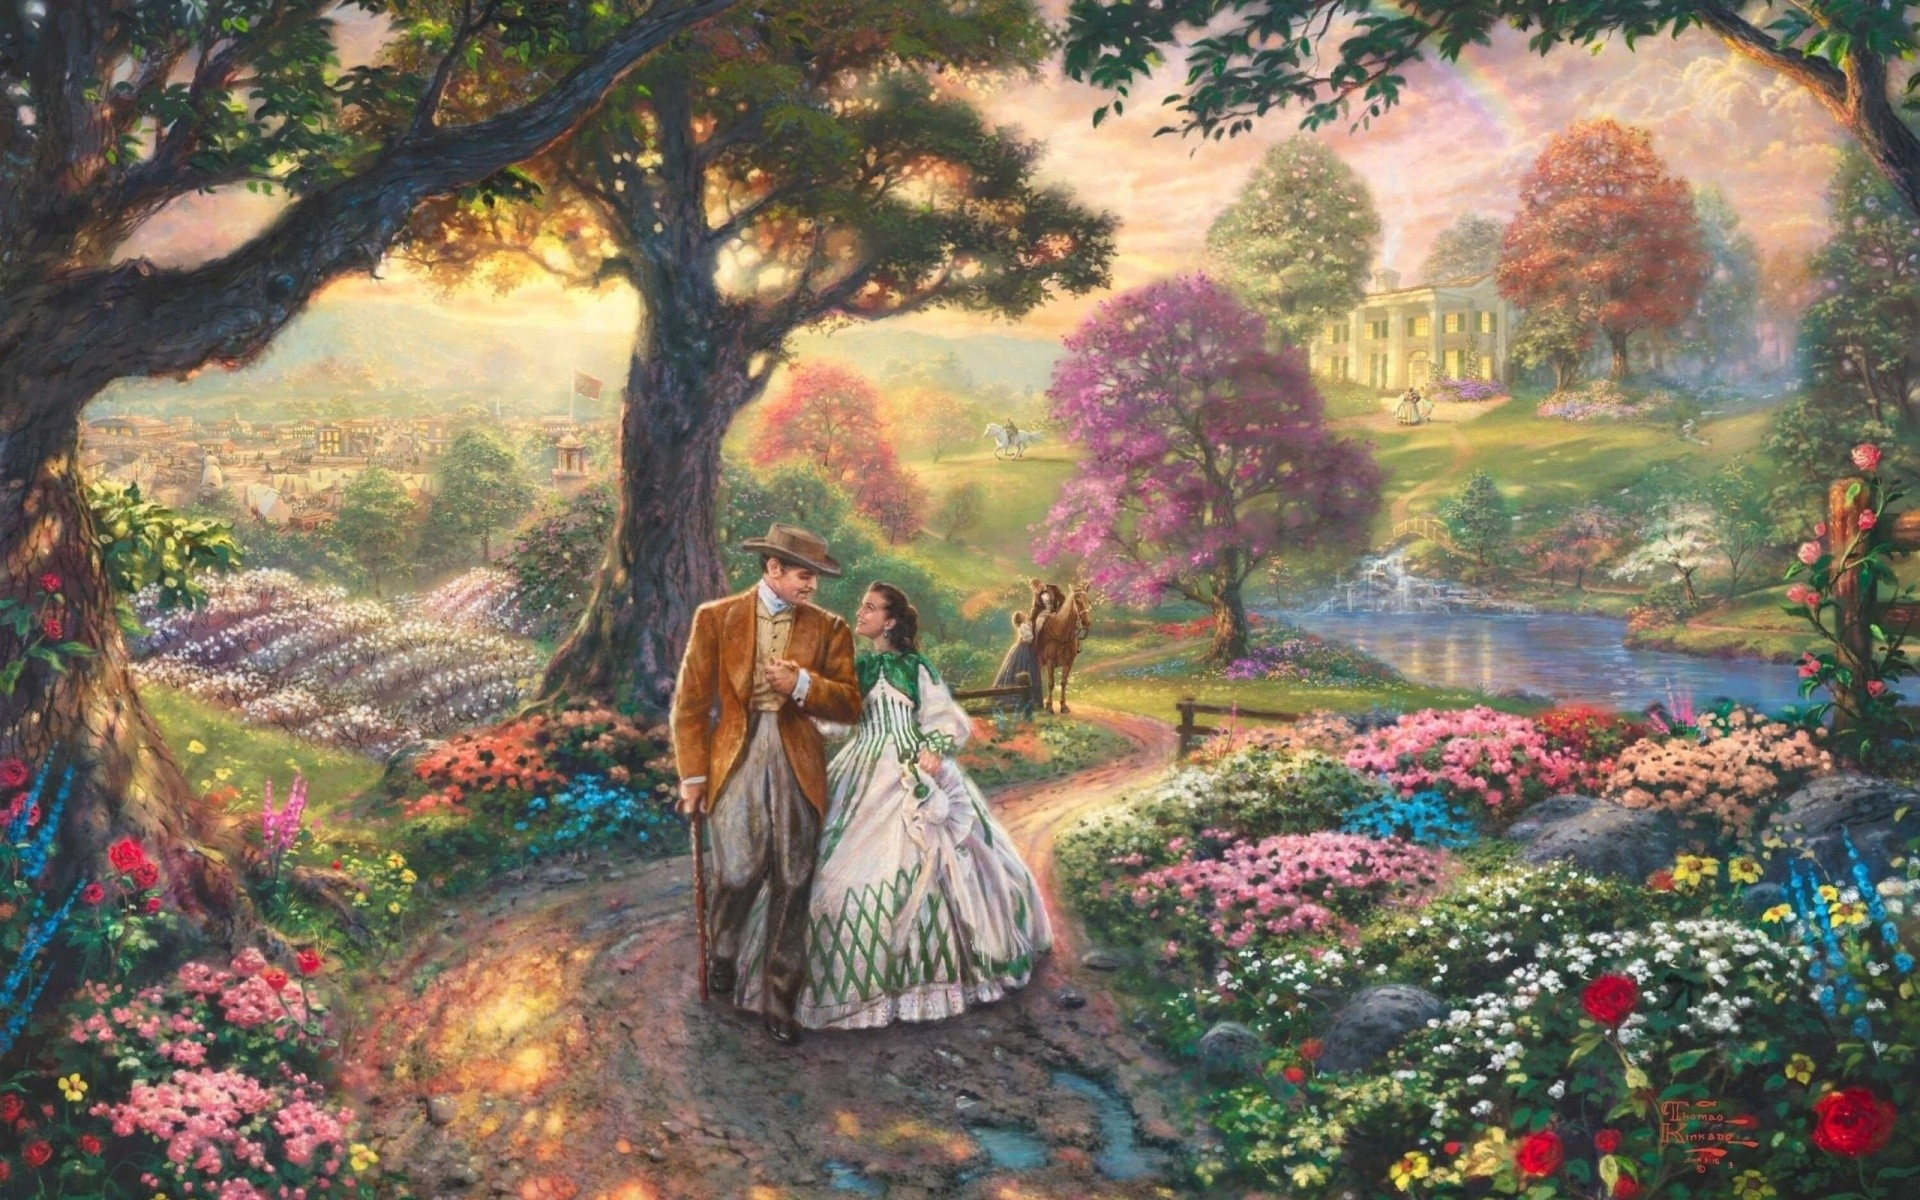 1920x1200 Gone With The Wind, Thomas Kinkade Wallpaper, Painting